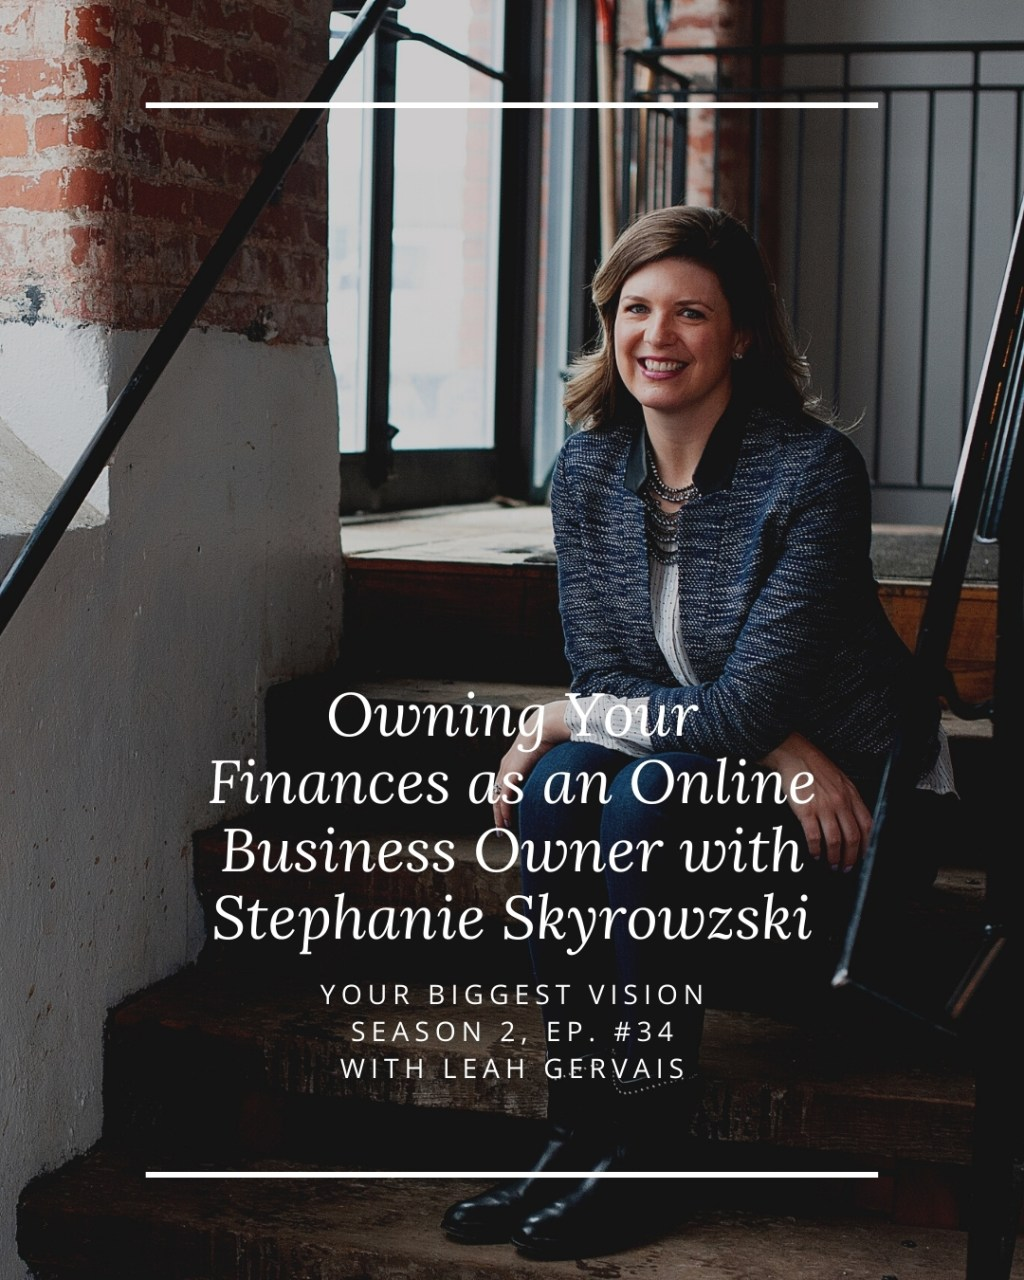 Hear Stephanie Skyrowzski, founder of 100 Degrees Consulting, share insightful tips and advice on how to confidently manage your business financially!